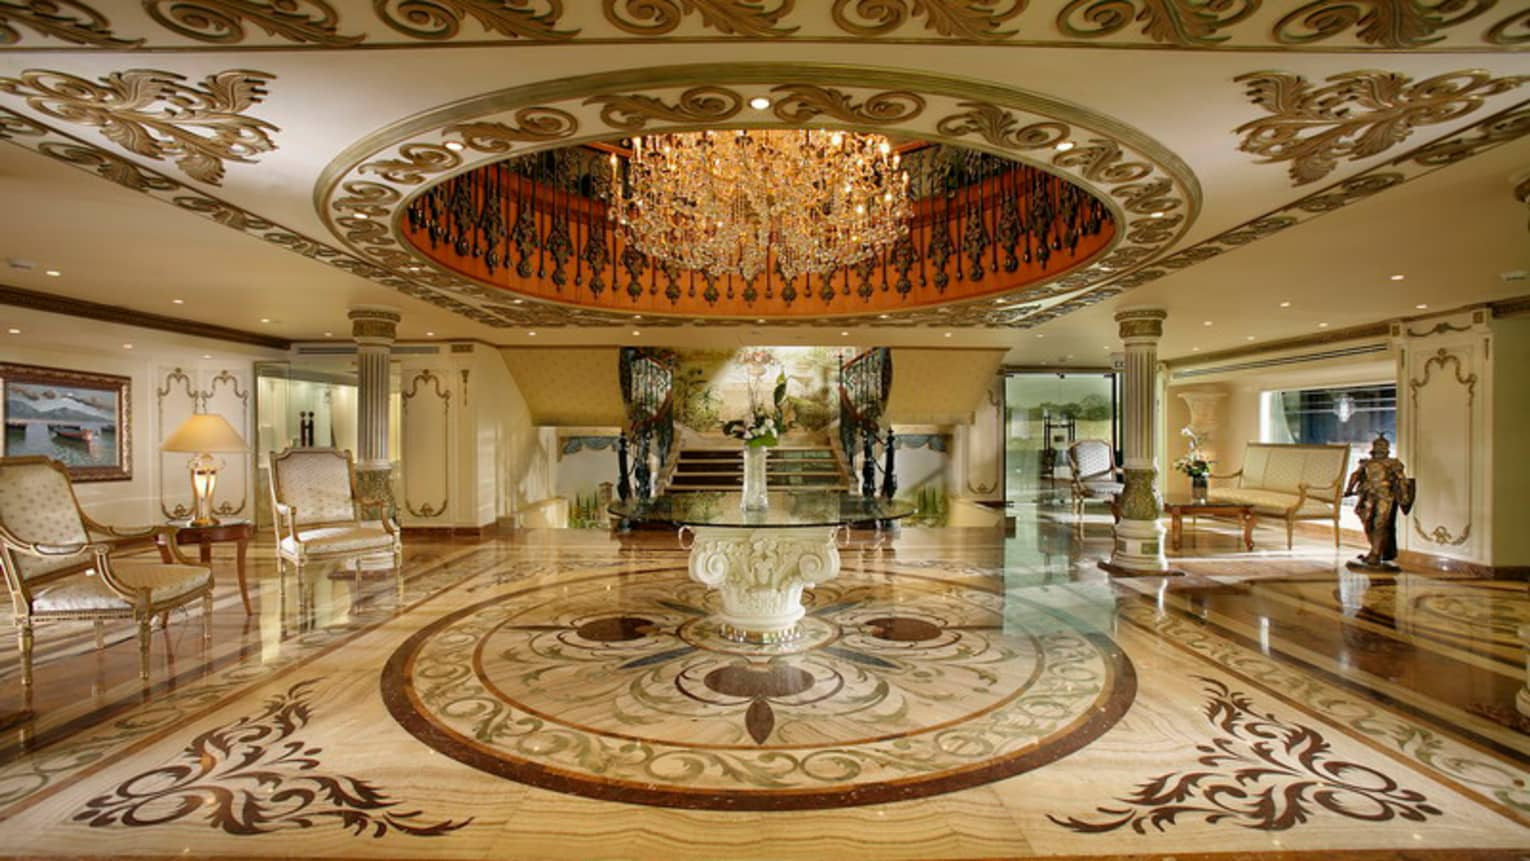 Large crystal chandelier in recessed dome ceiling over marble hotel lobby floor